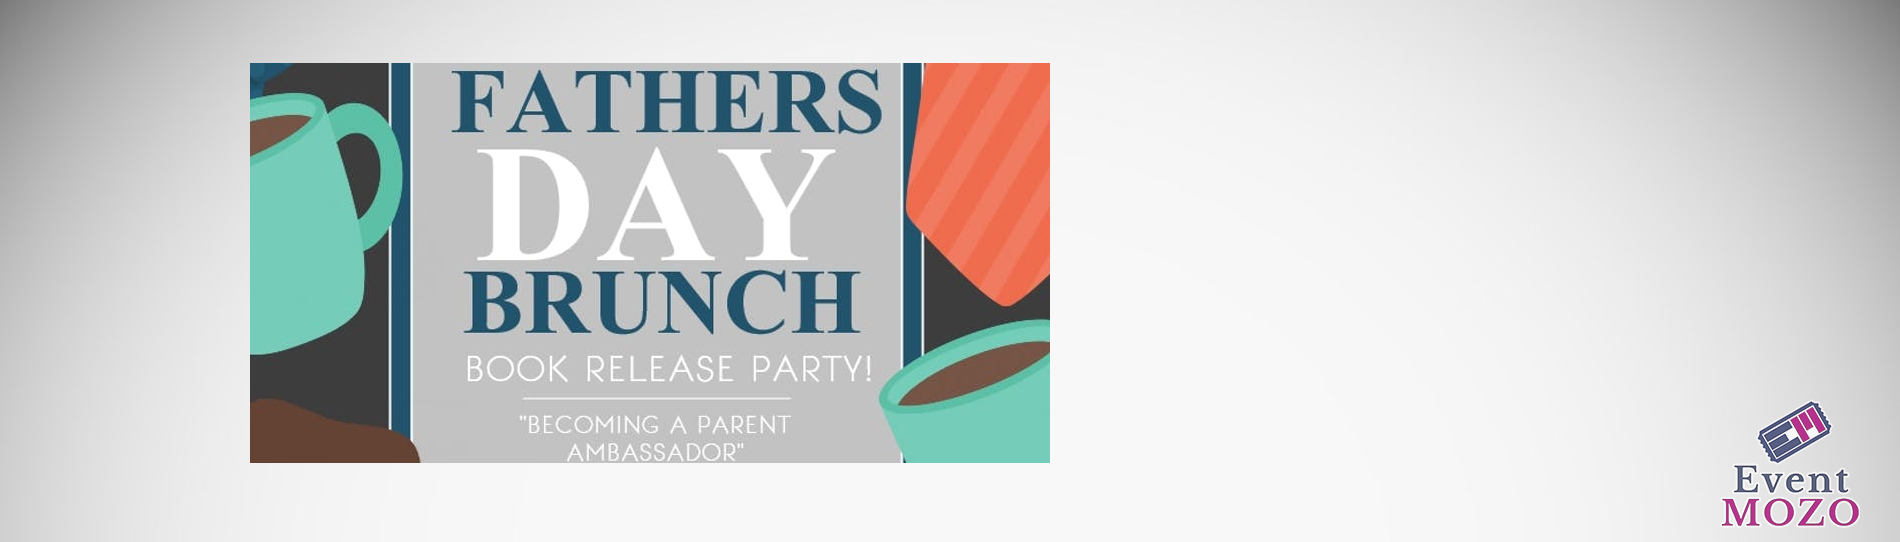 EventMozo Father's Day Brunch/Book Release Party: